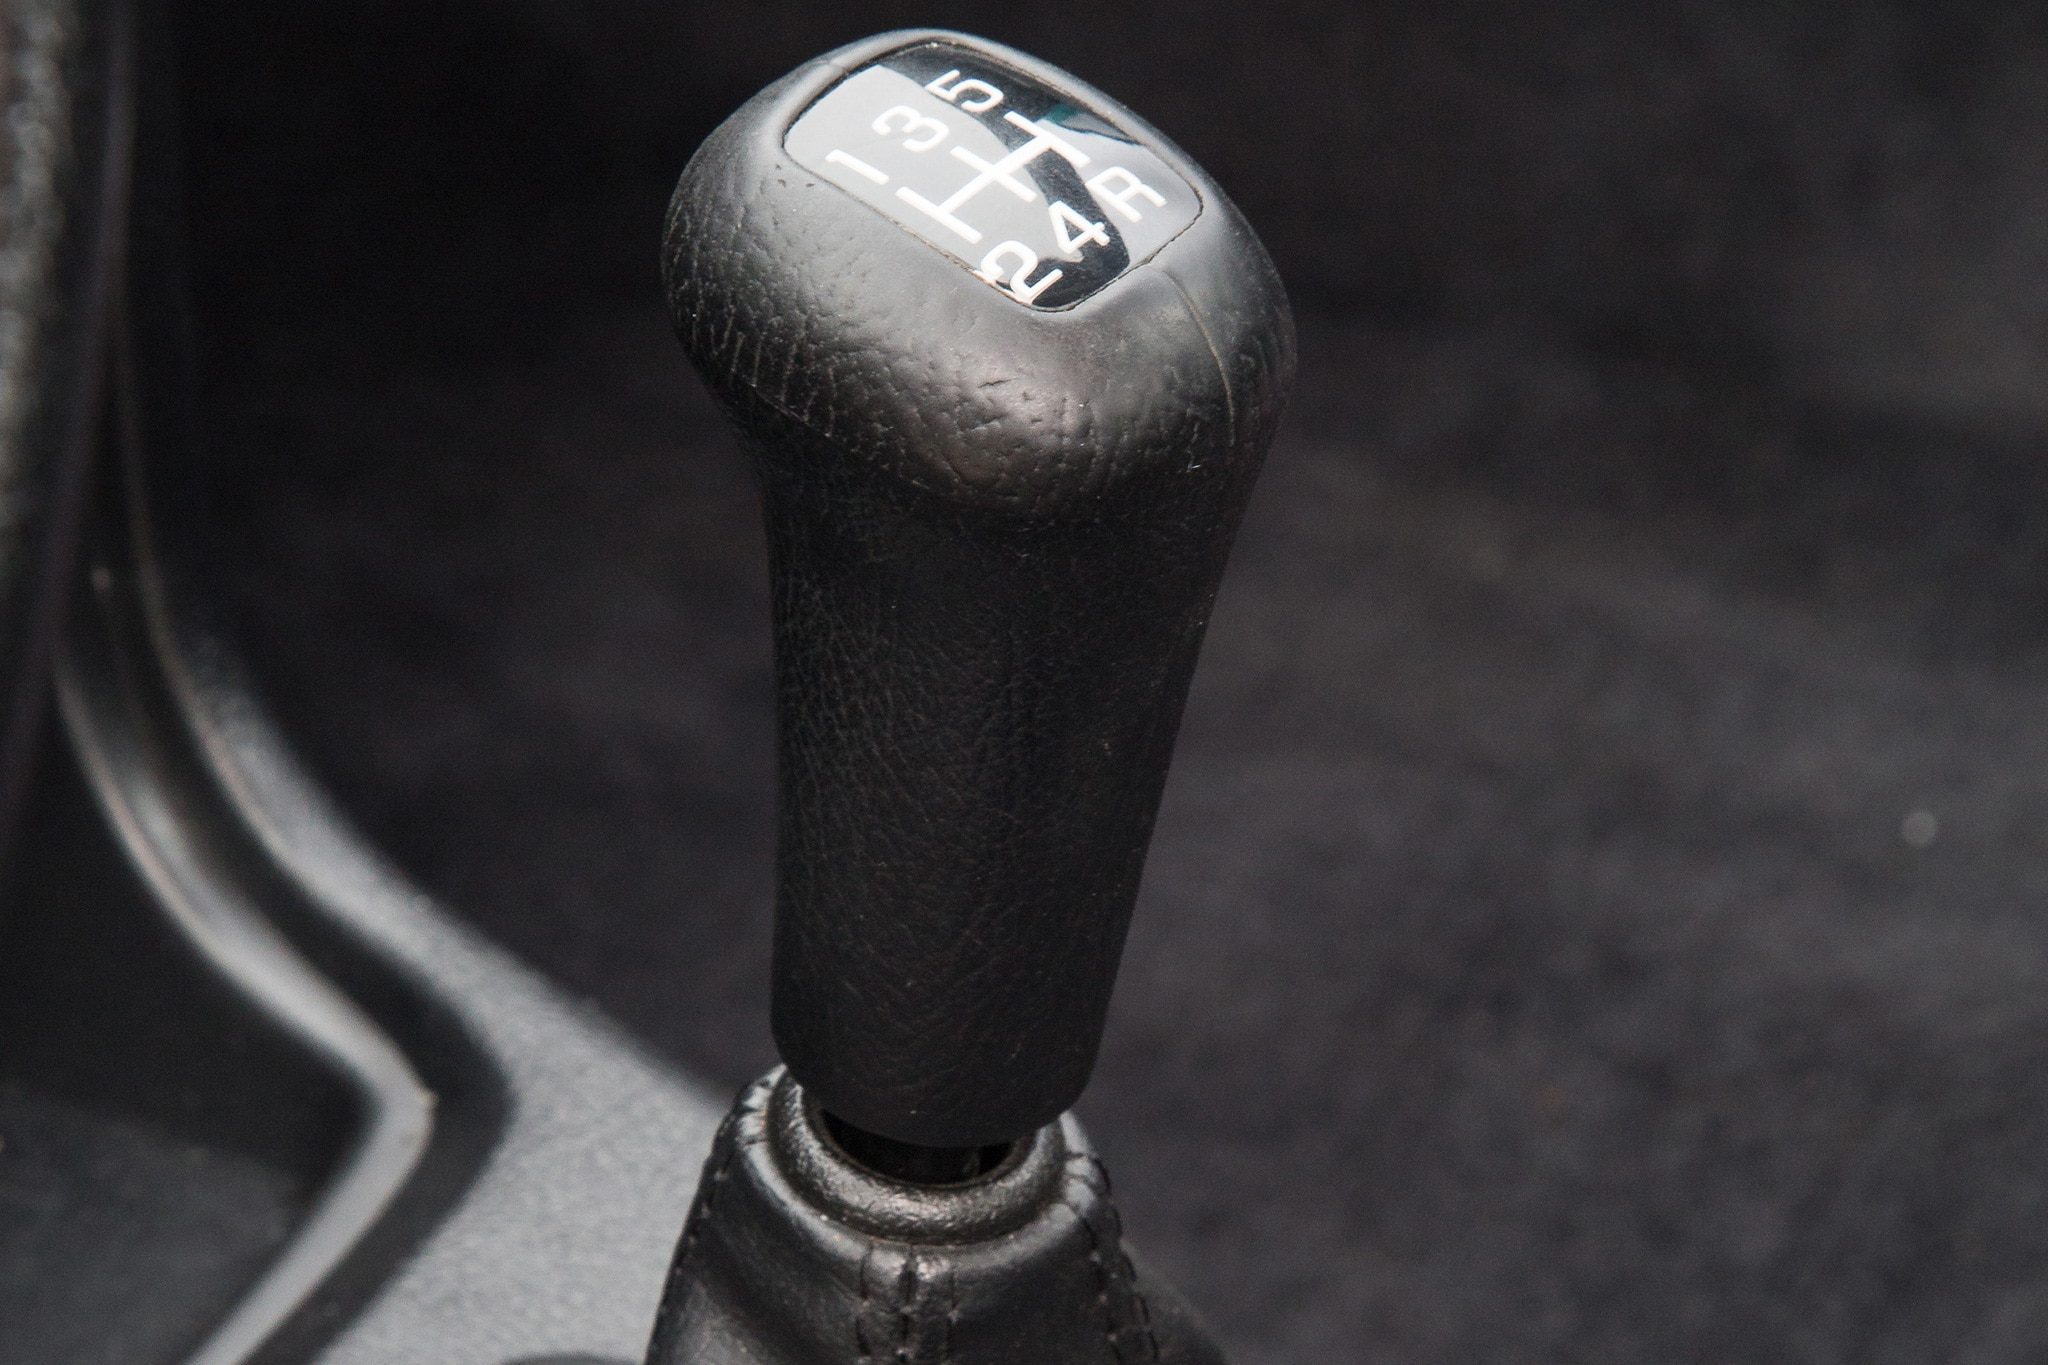 Acura Integra Gs R Gear Shifter on 1993 Acura Integra Gs Modified